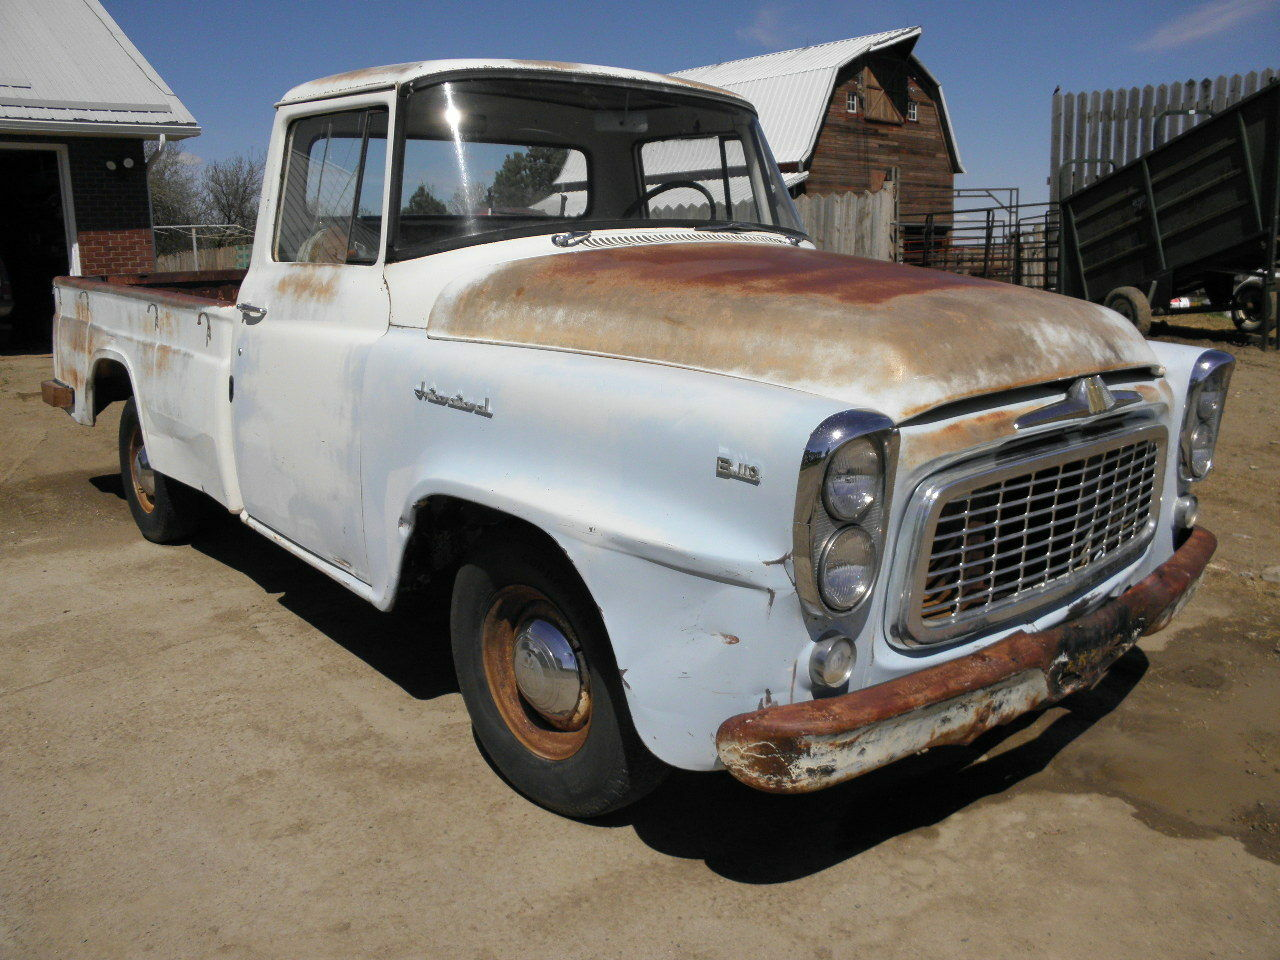 1959 1960 International B 110 Pickup Truck 120 L R S A 1950 1954 Ford F100 Gas Tank 1 Of 12only Available